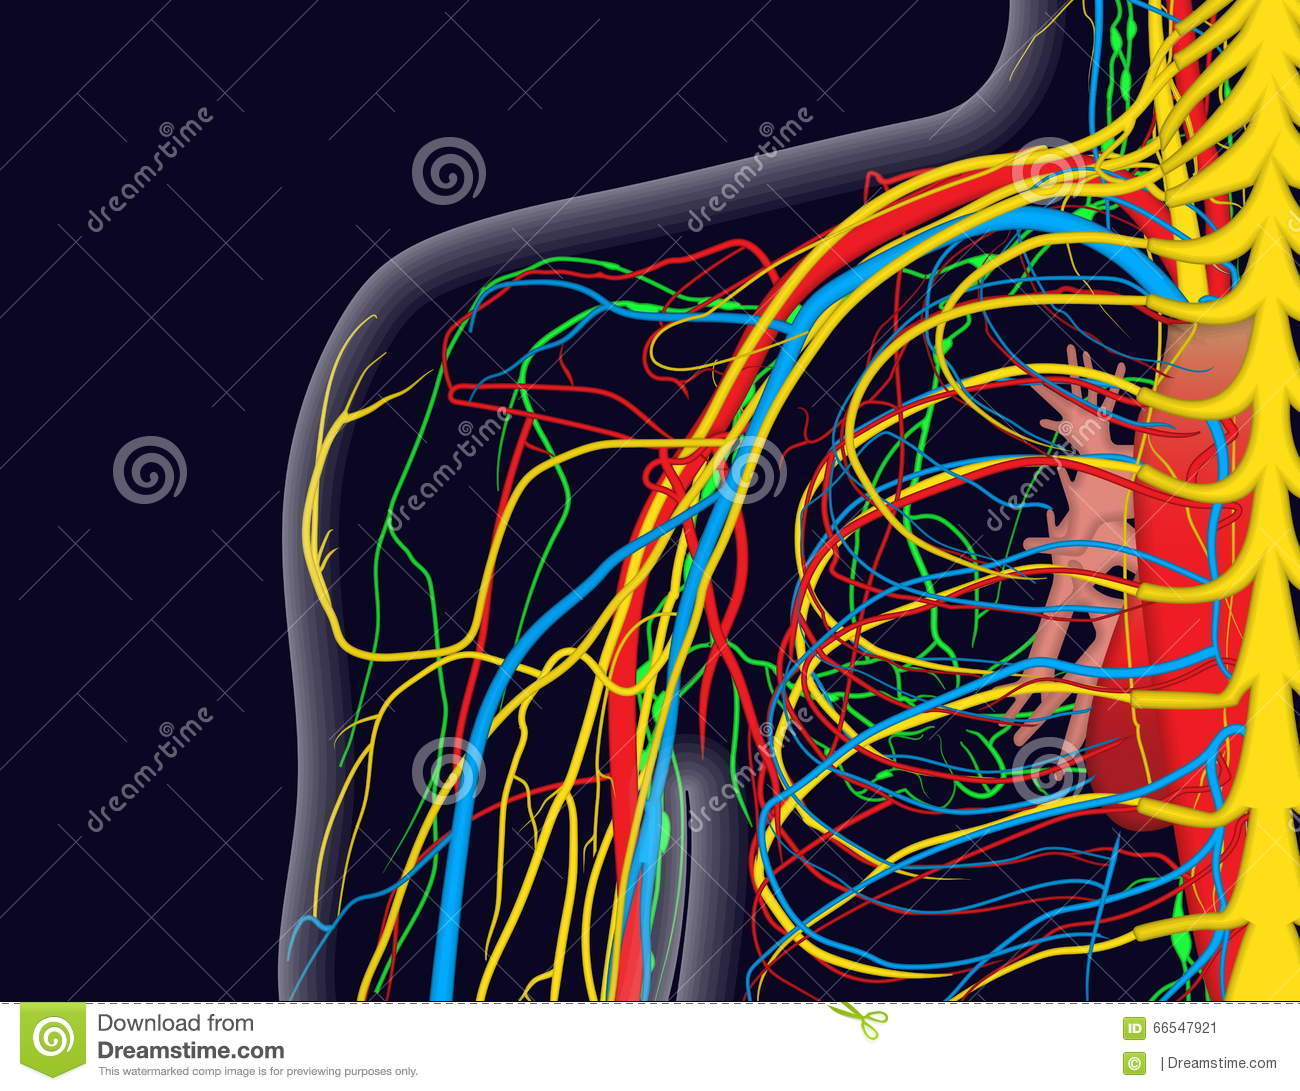 Medical Illustration Of The Shoulder Anatomy With Nerves, Veins And ...